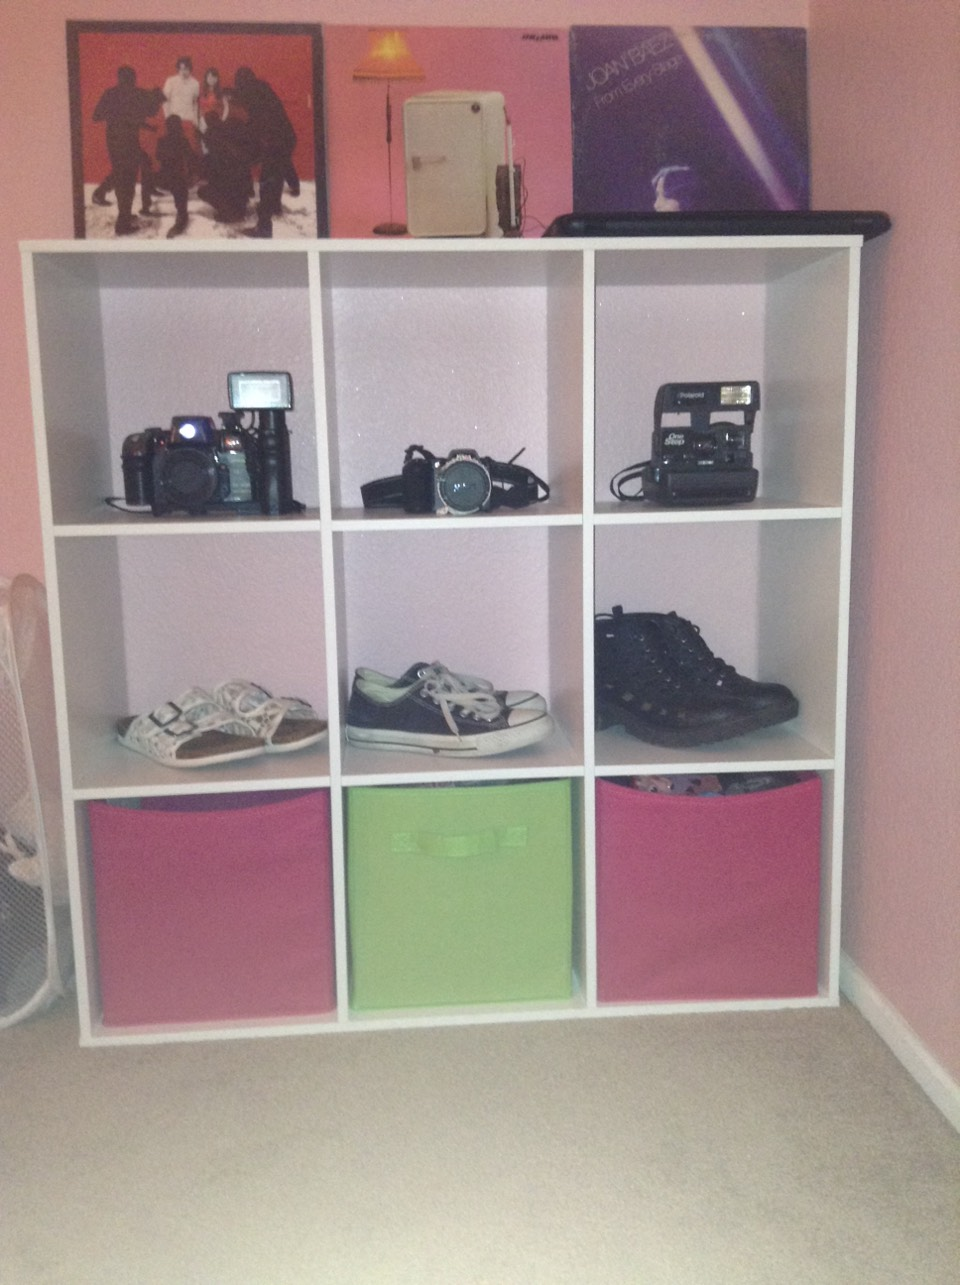 Line up some of your favorite or most worn shoes and some boxes for storage.